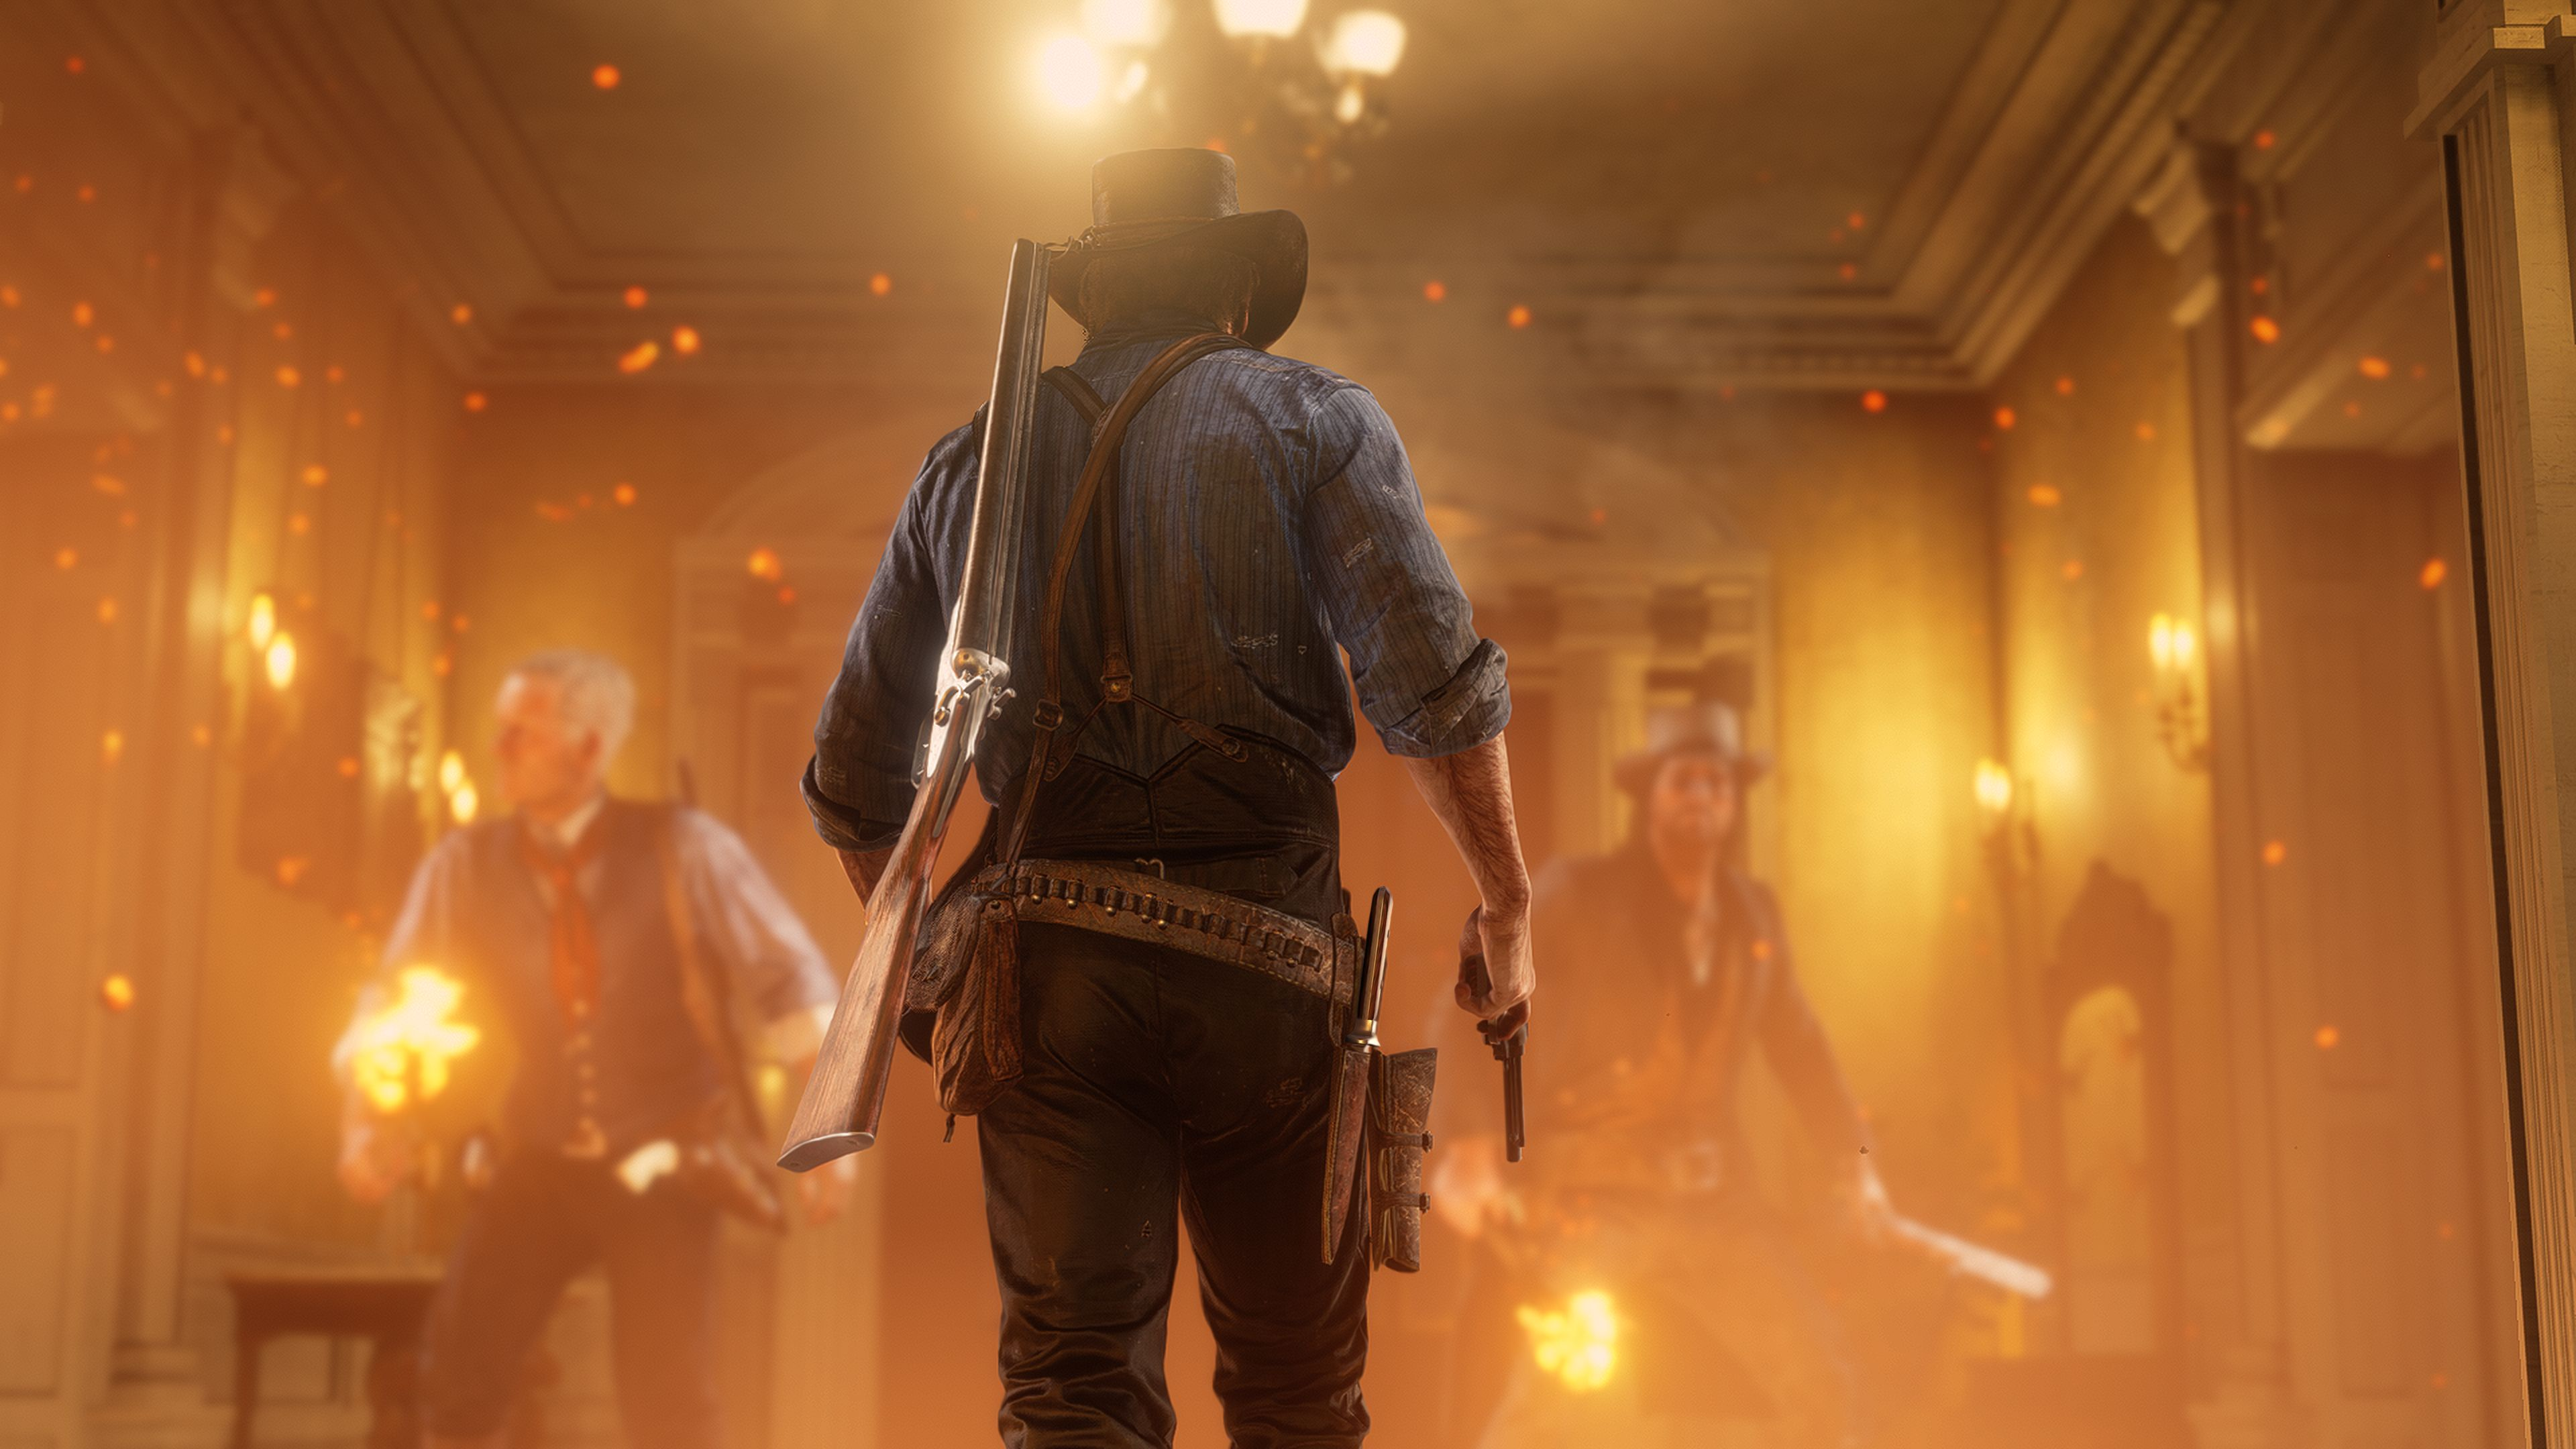 red dead redemption 2 4k game 1542494902 - Red Dead Redemption 2 4k Game - red dead redemption 2 wallpapers, hd-wallpapers, games wallpapers, 4k-wallpapers, 2018 games wallpapers